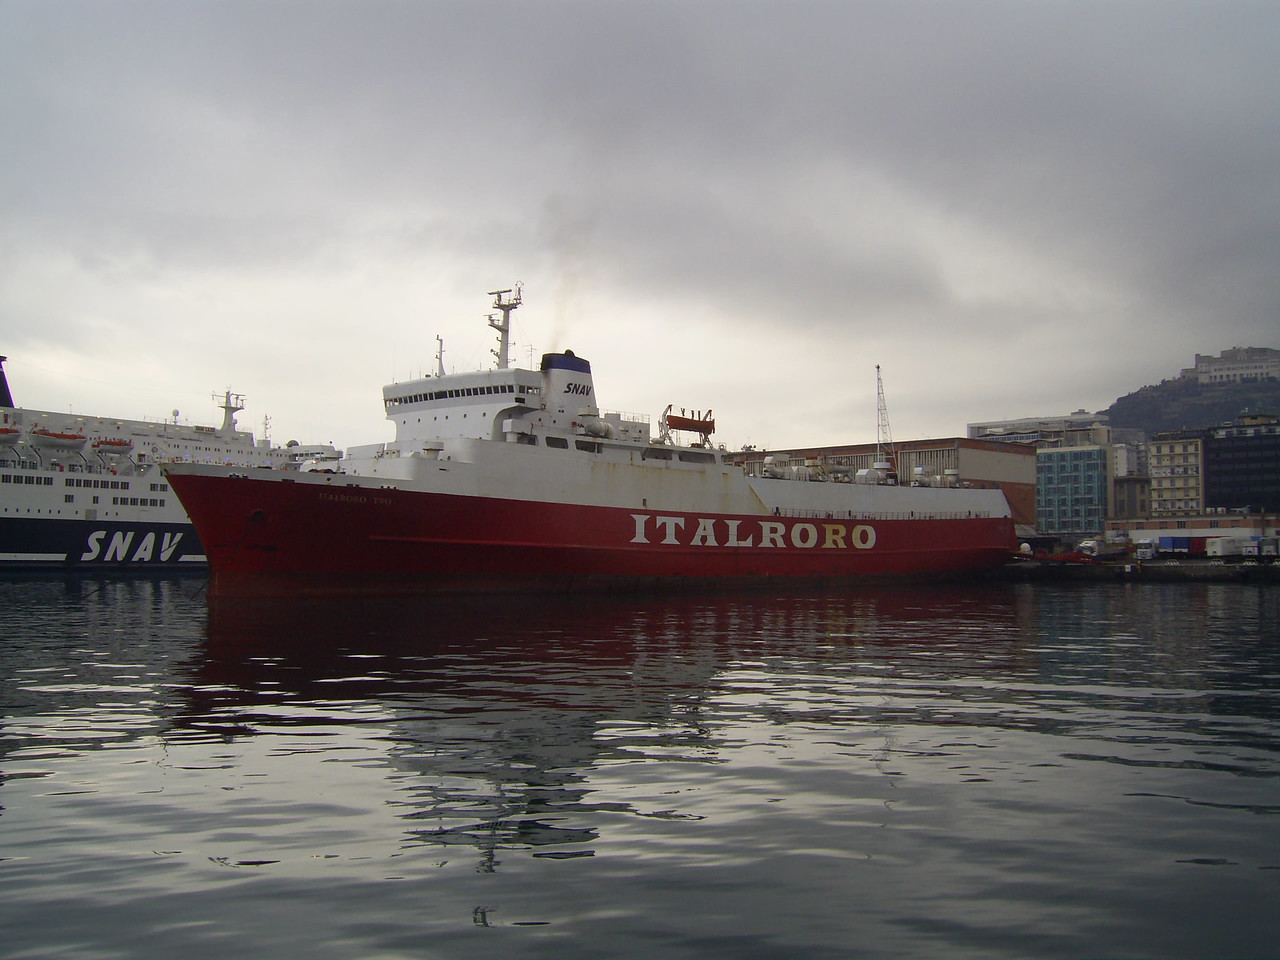 2008 - M/S ITALRORO TWO in Napoli.